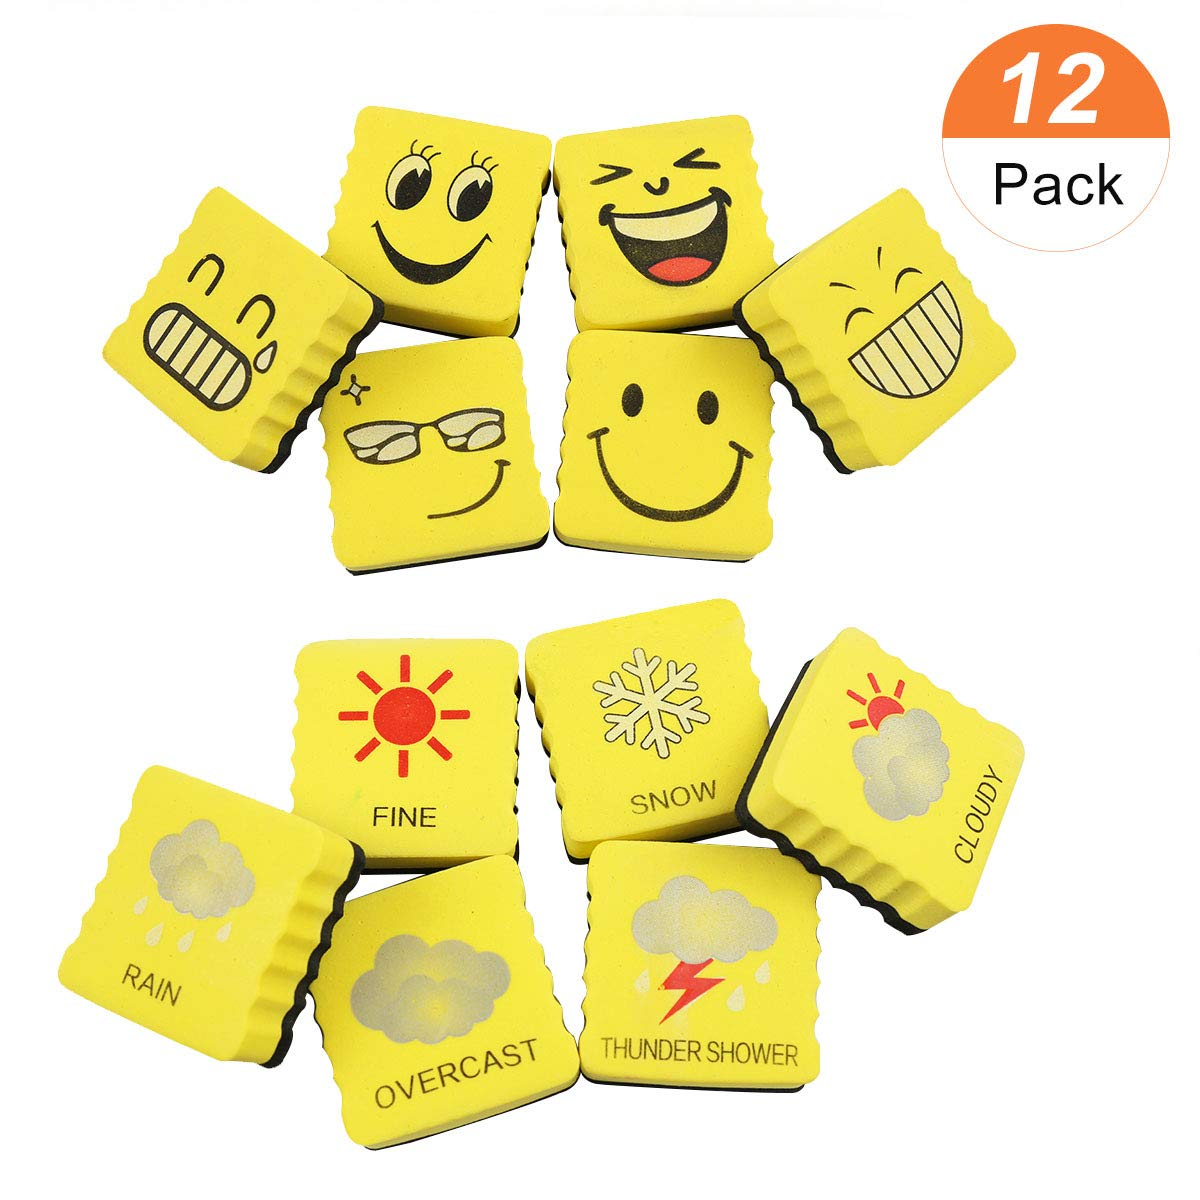 Zhidian 12 Pack Magnetic Smiley Face Whiteboarddry Erase Board Erasersmall Cube Whiteboardchalkboard Cleaners For School Classroom Home Office